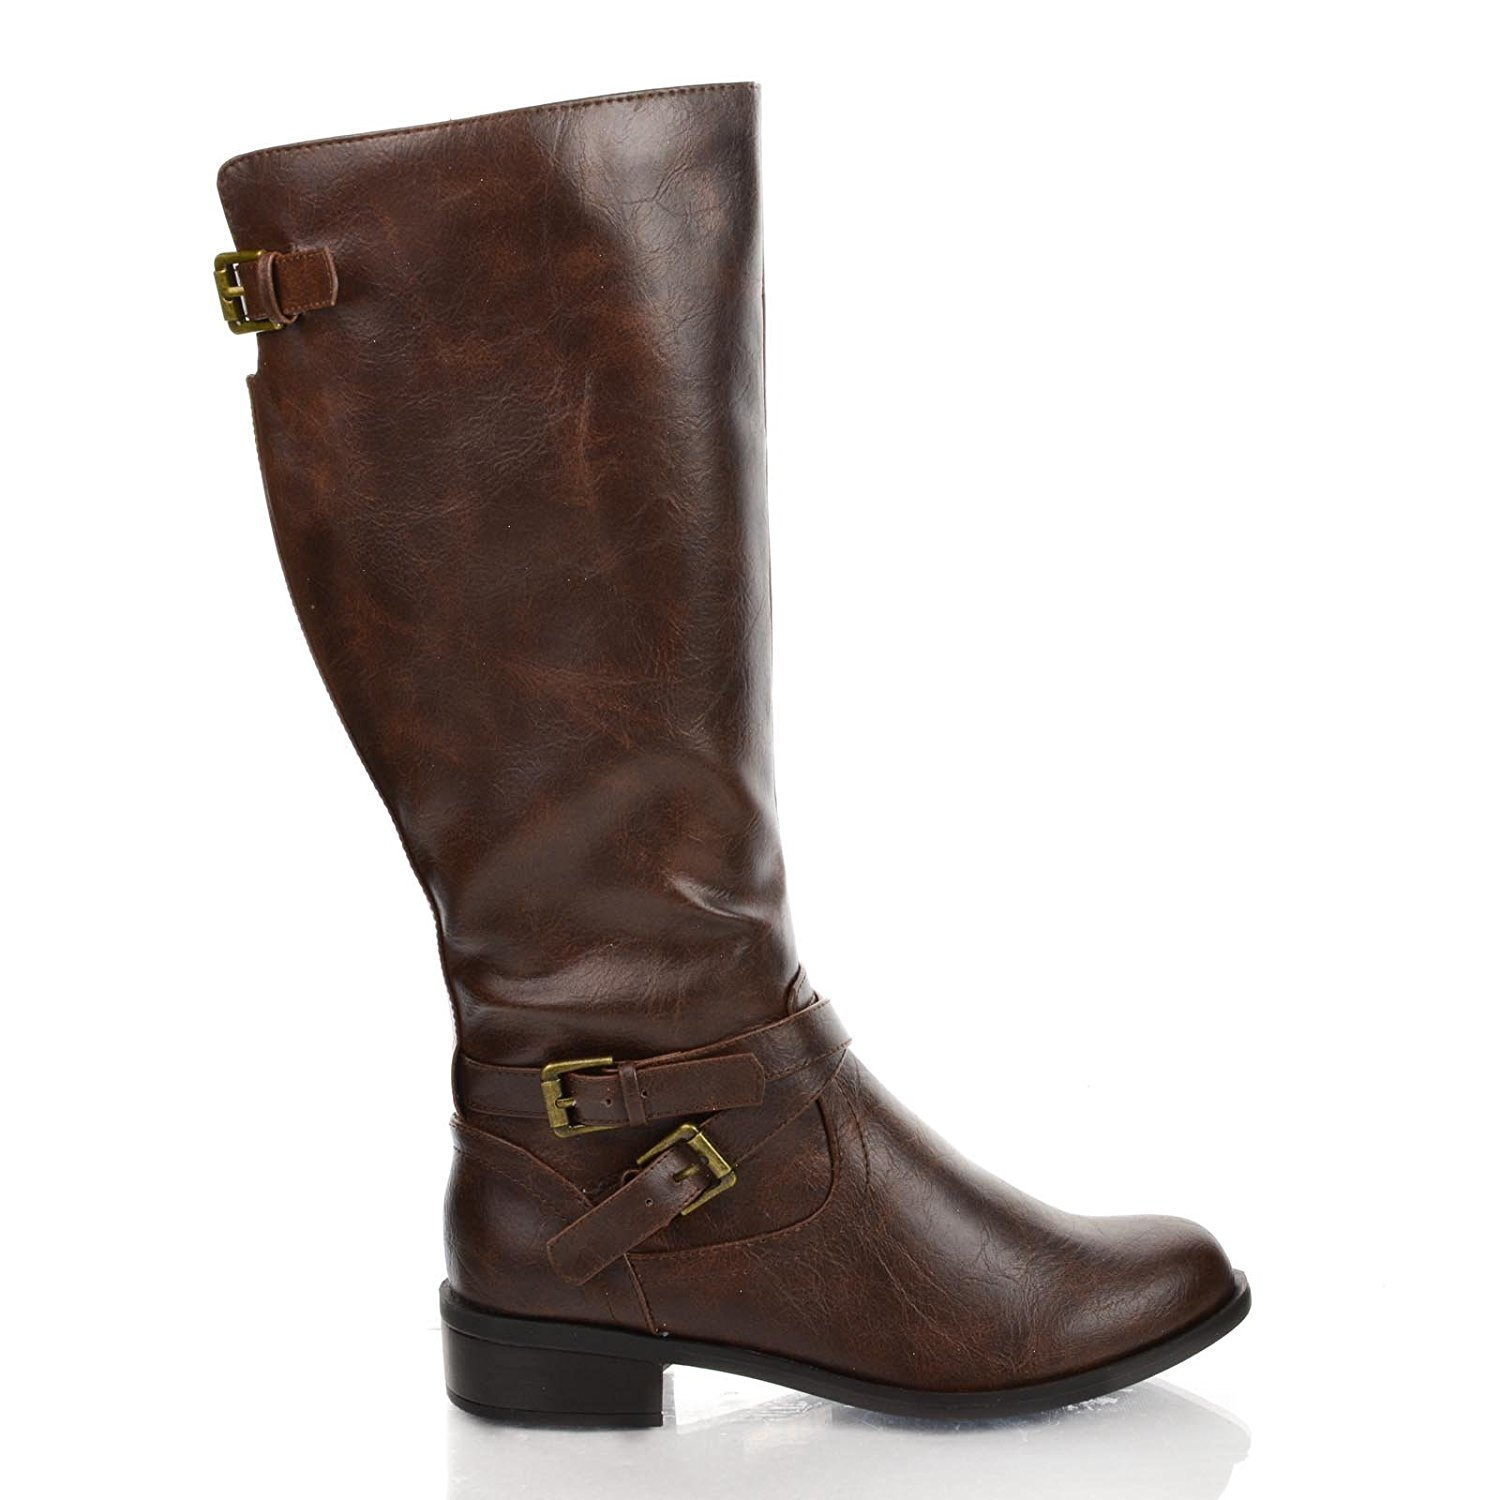 578345b32f46 Hispar Spirit Ladies Women Tall knee high Leather Equestrian Polo Boots.  null. null. Get Quotations · Bio Military Equestrian Biker Riding Boots Tall  Knee ...